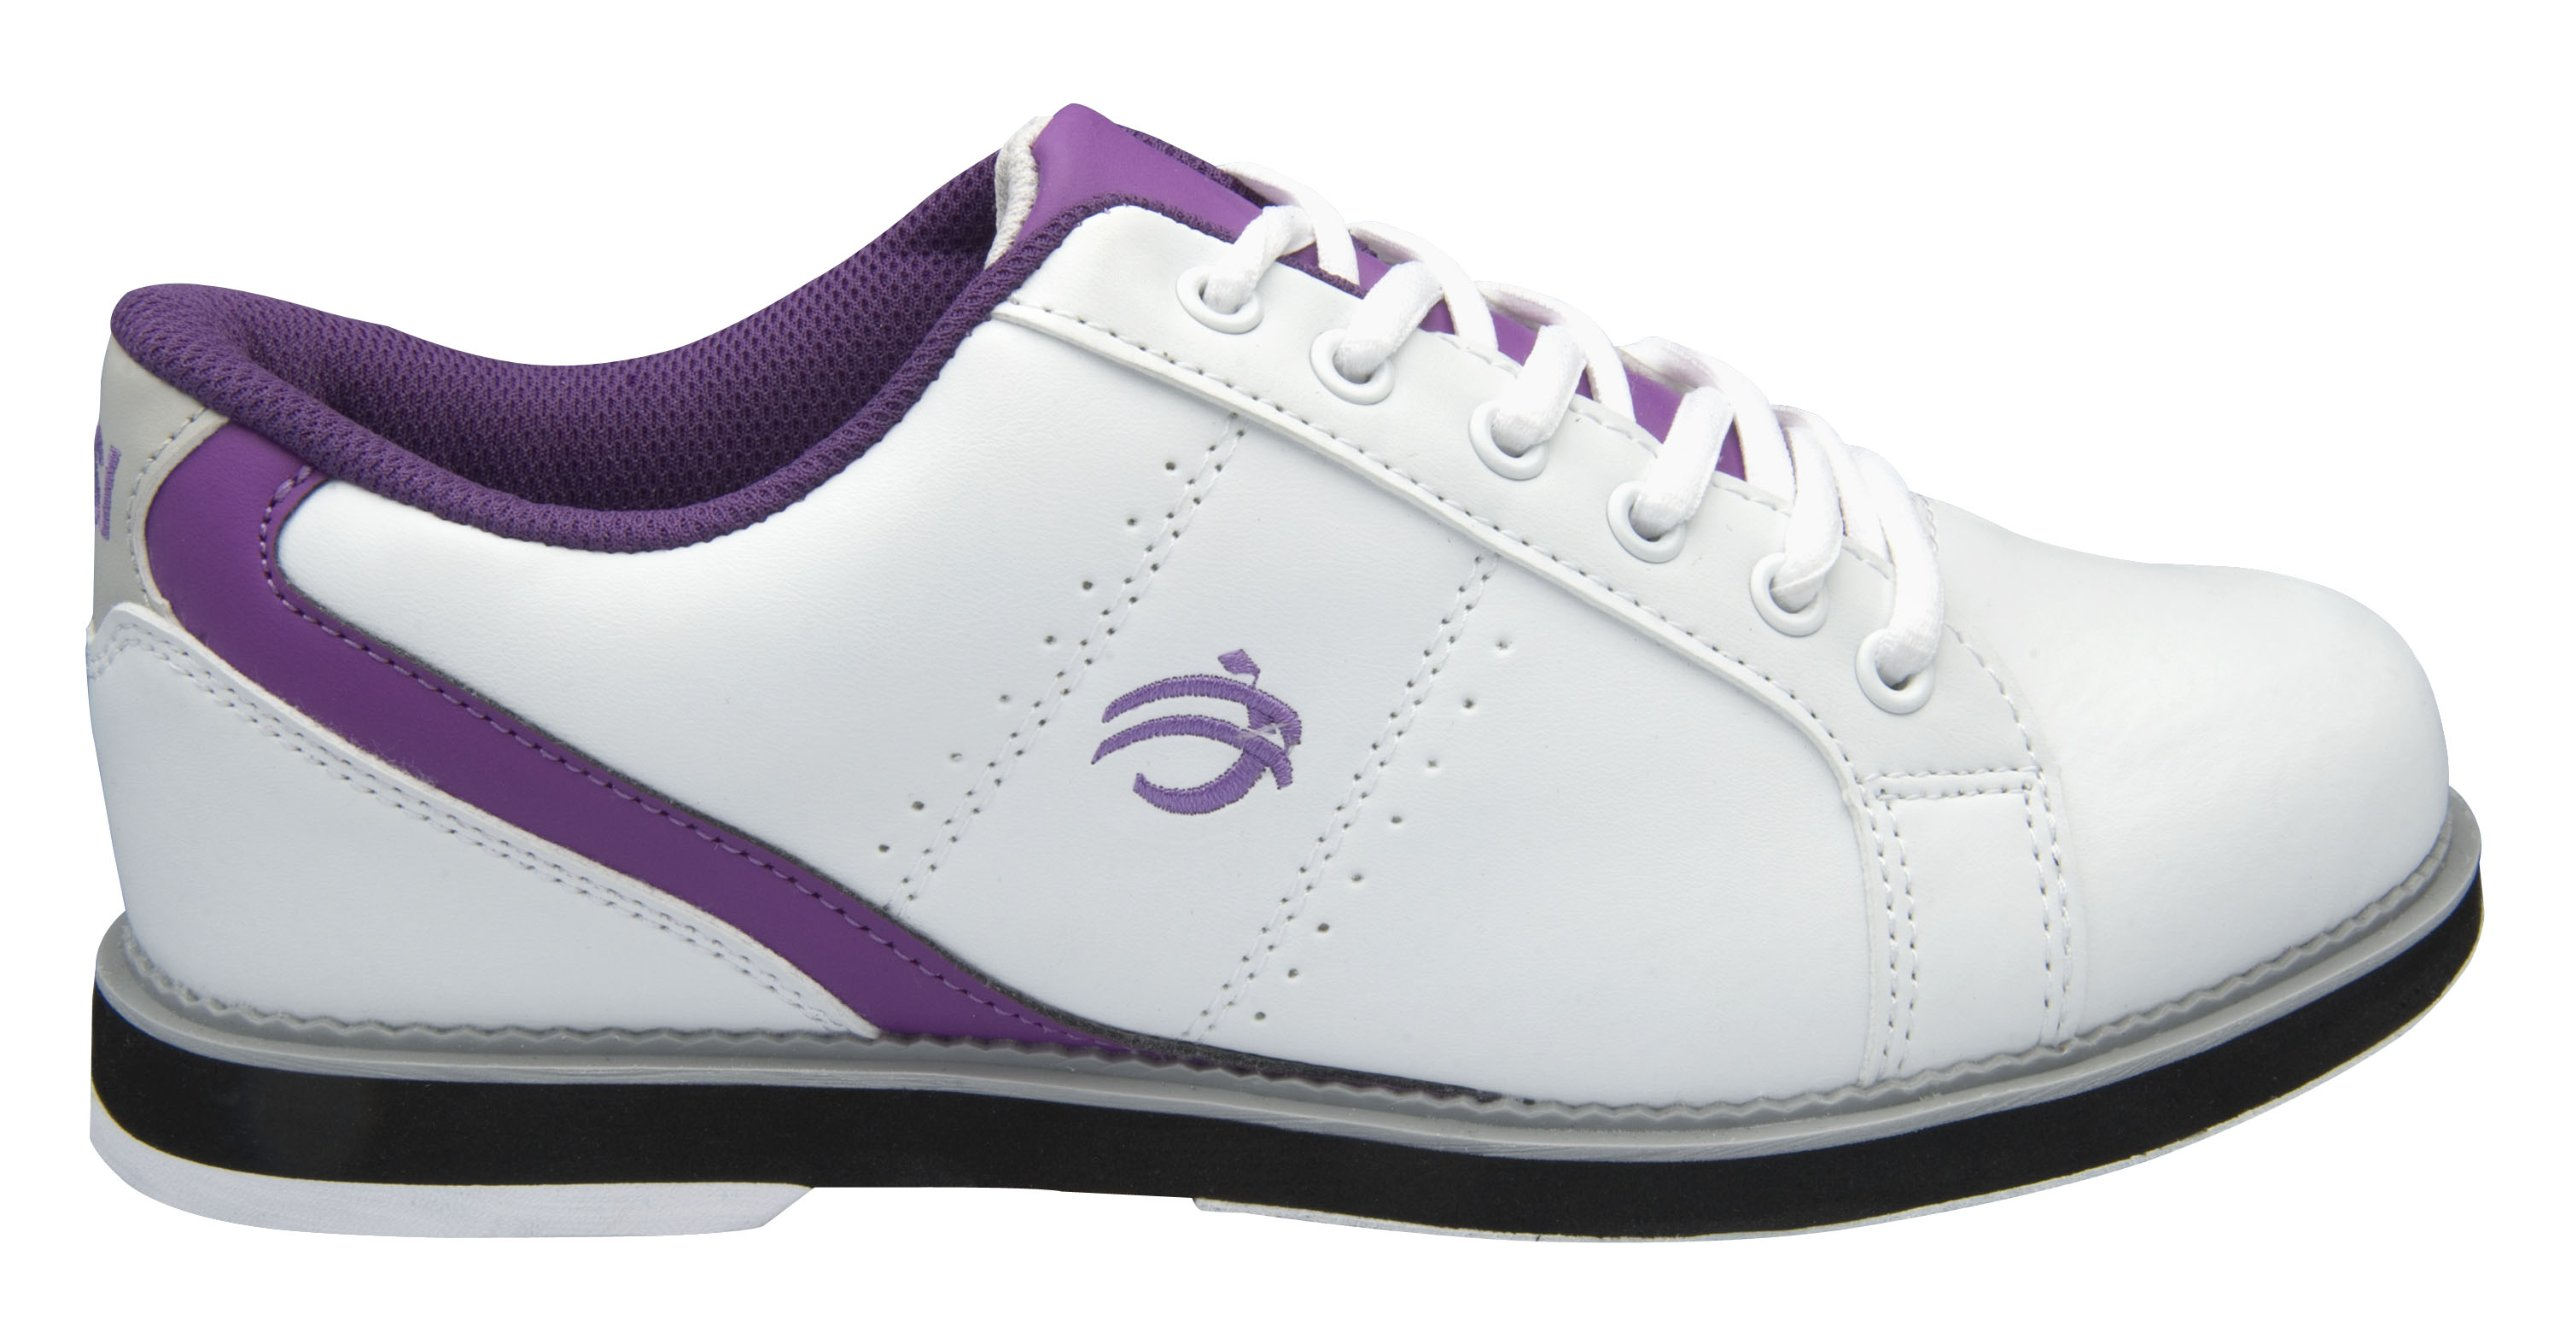 BSI Women's 460 Bowling Shoe, White/Purple, Size 7.5